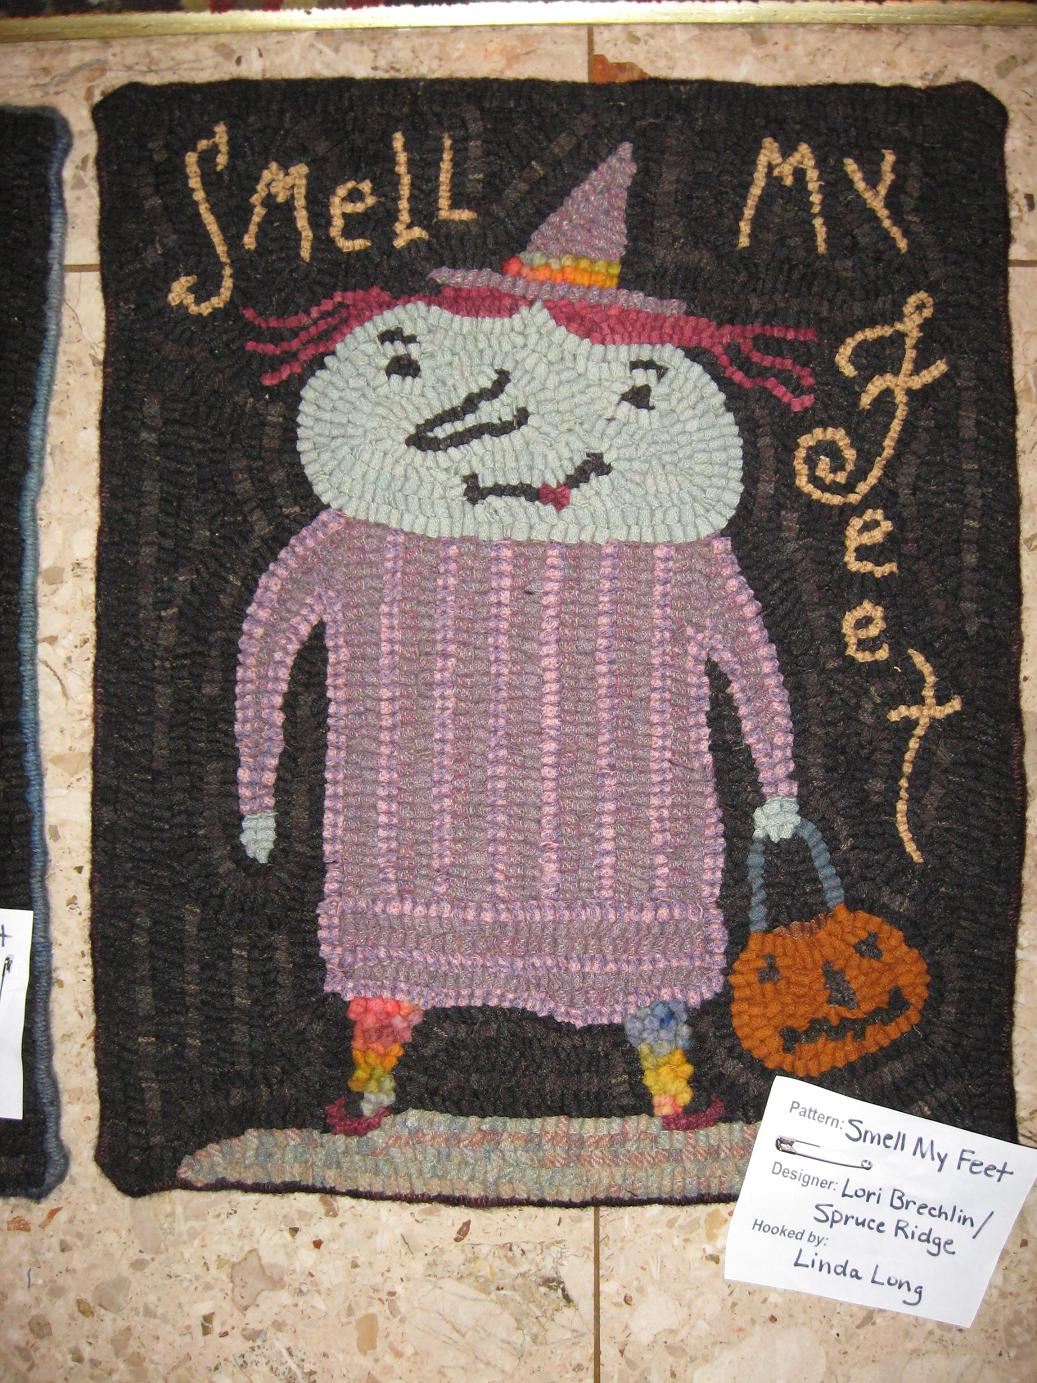 Linda Long Hooked These Fun Two Halloween Rugs. Both Are Notforgotten Farm  Designs Adapted By Spruce Ridge Studios.